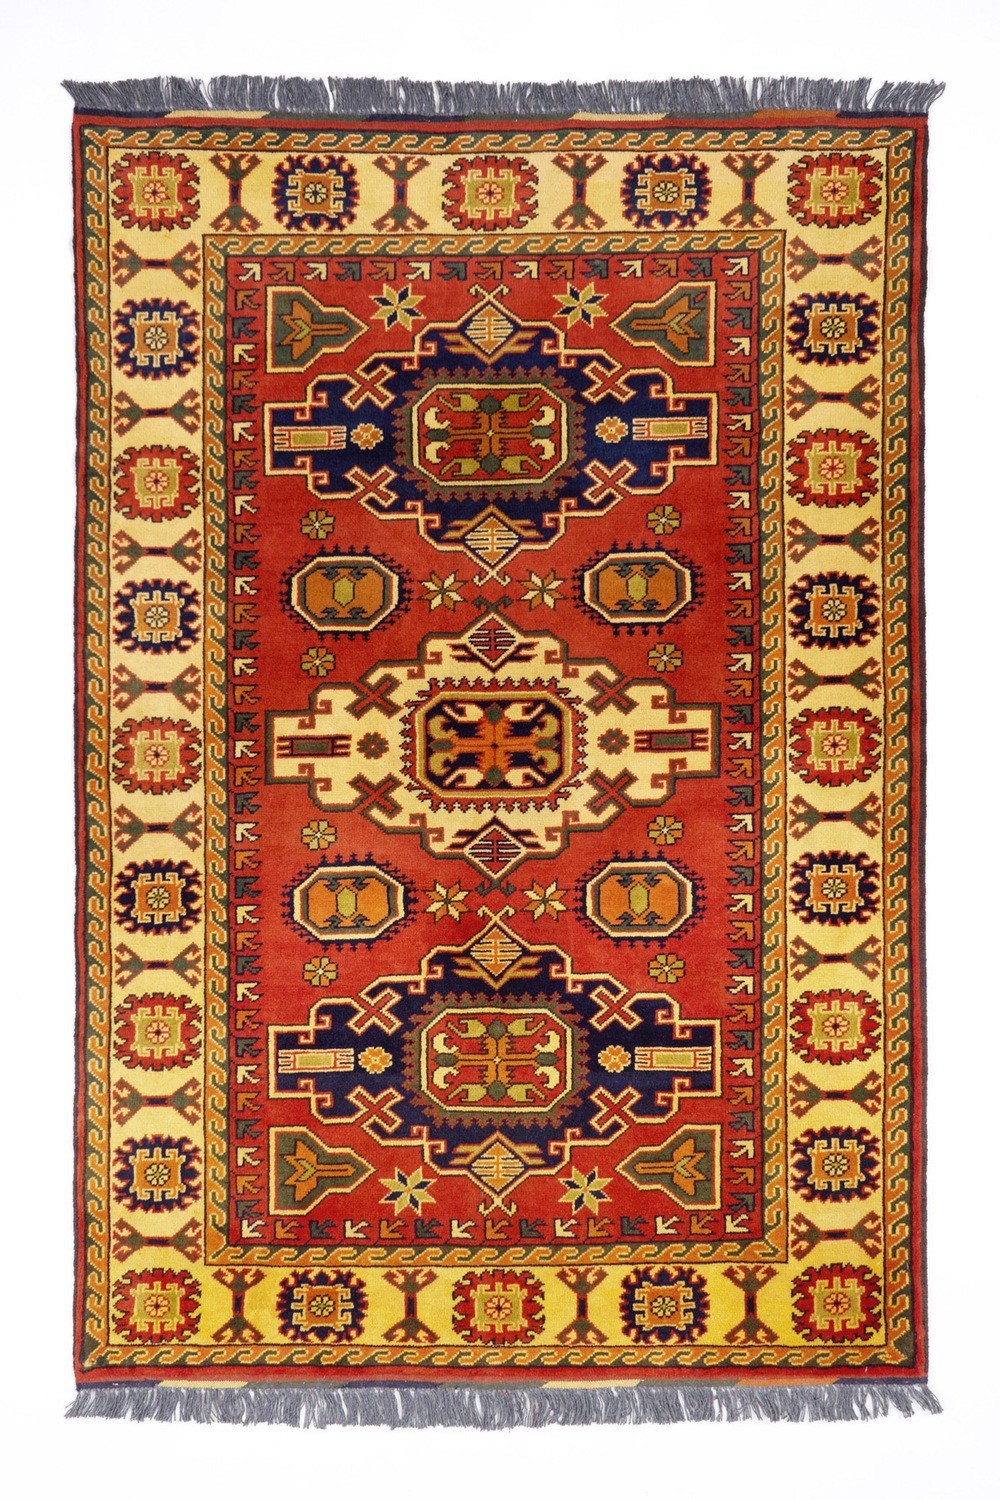 Afghan Azeri rug size size 1.79 x 1.23 Final Reduction